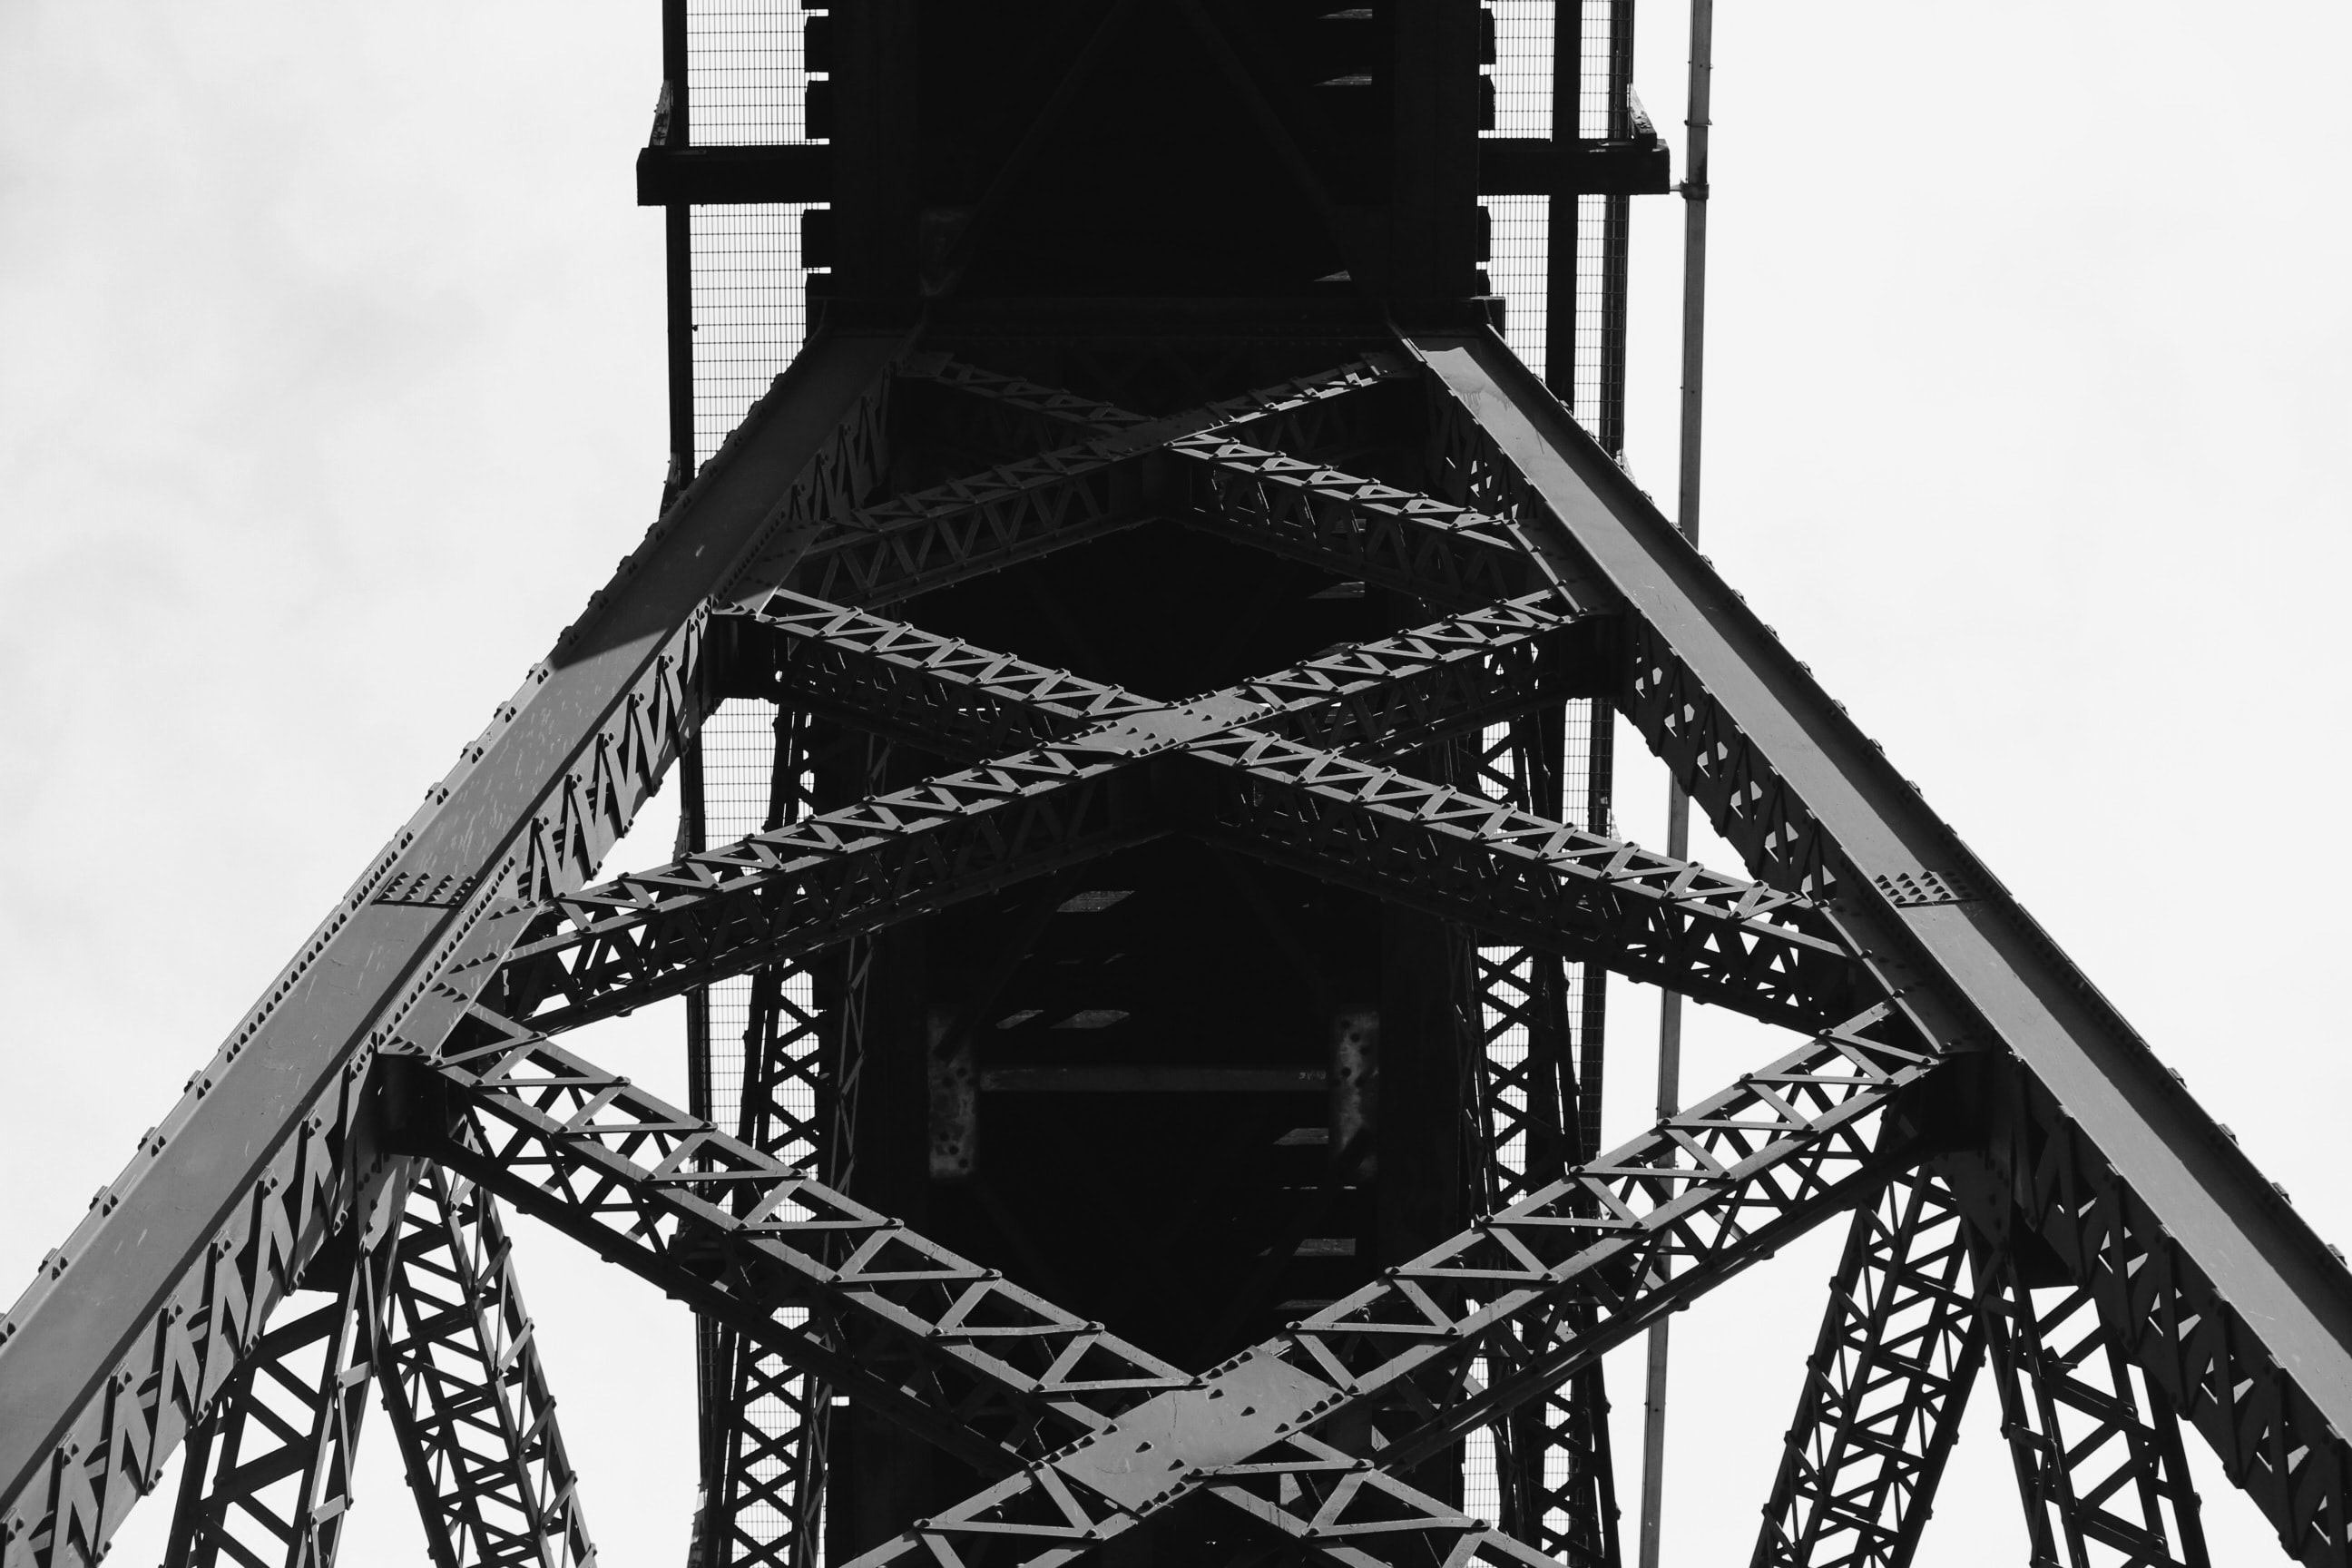 low angle and grayscale photography of metal bridge